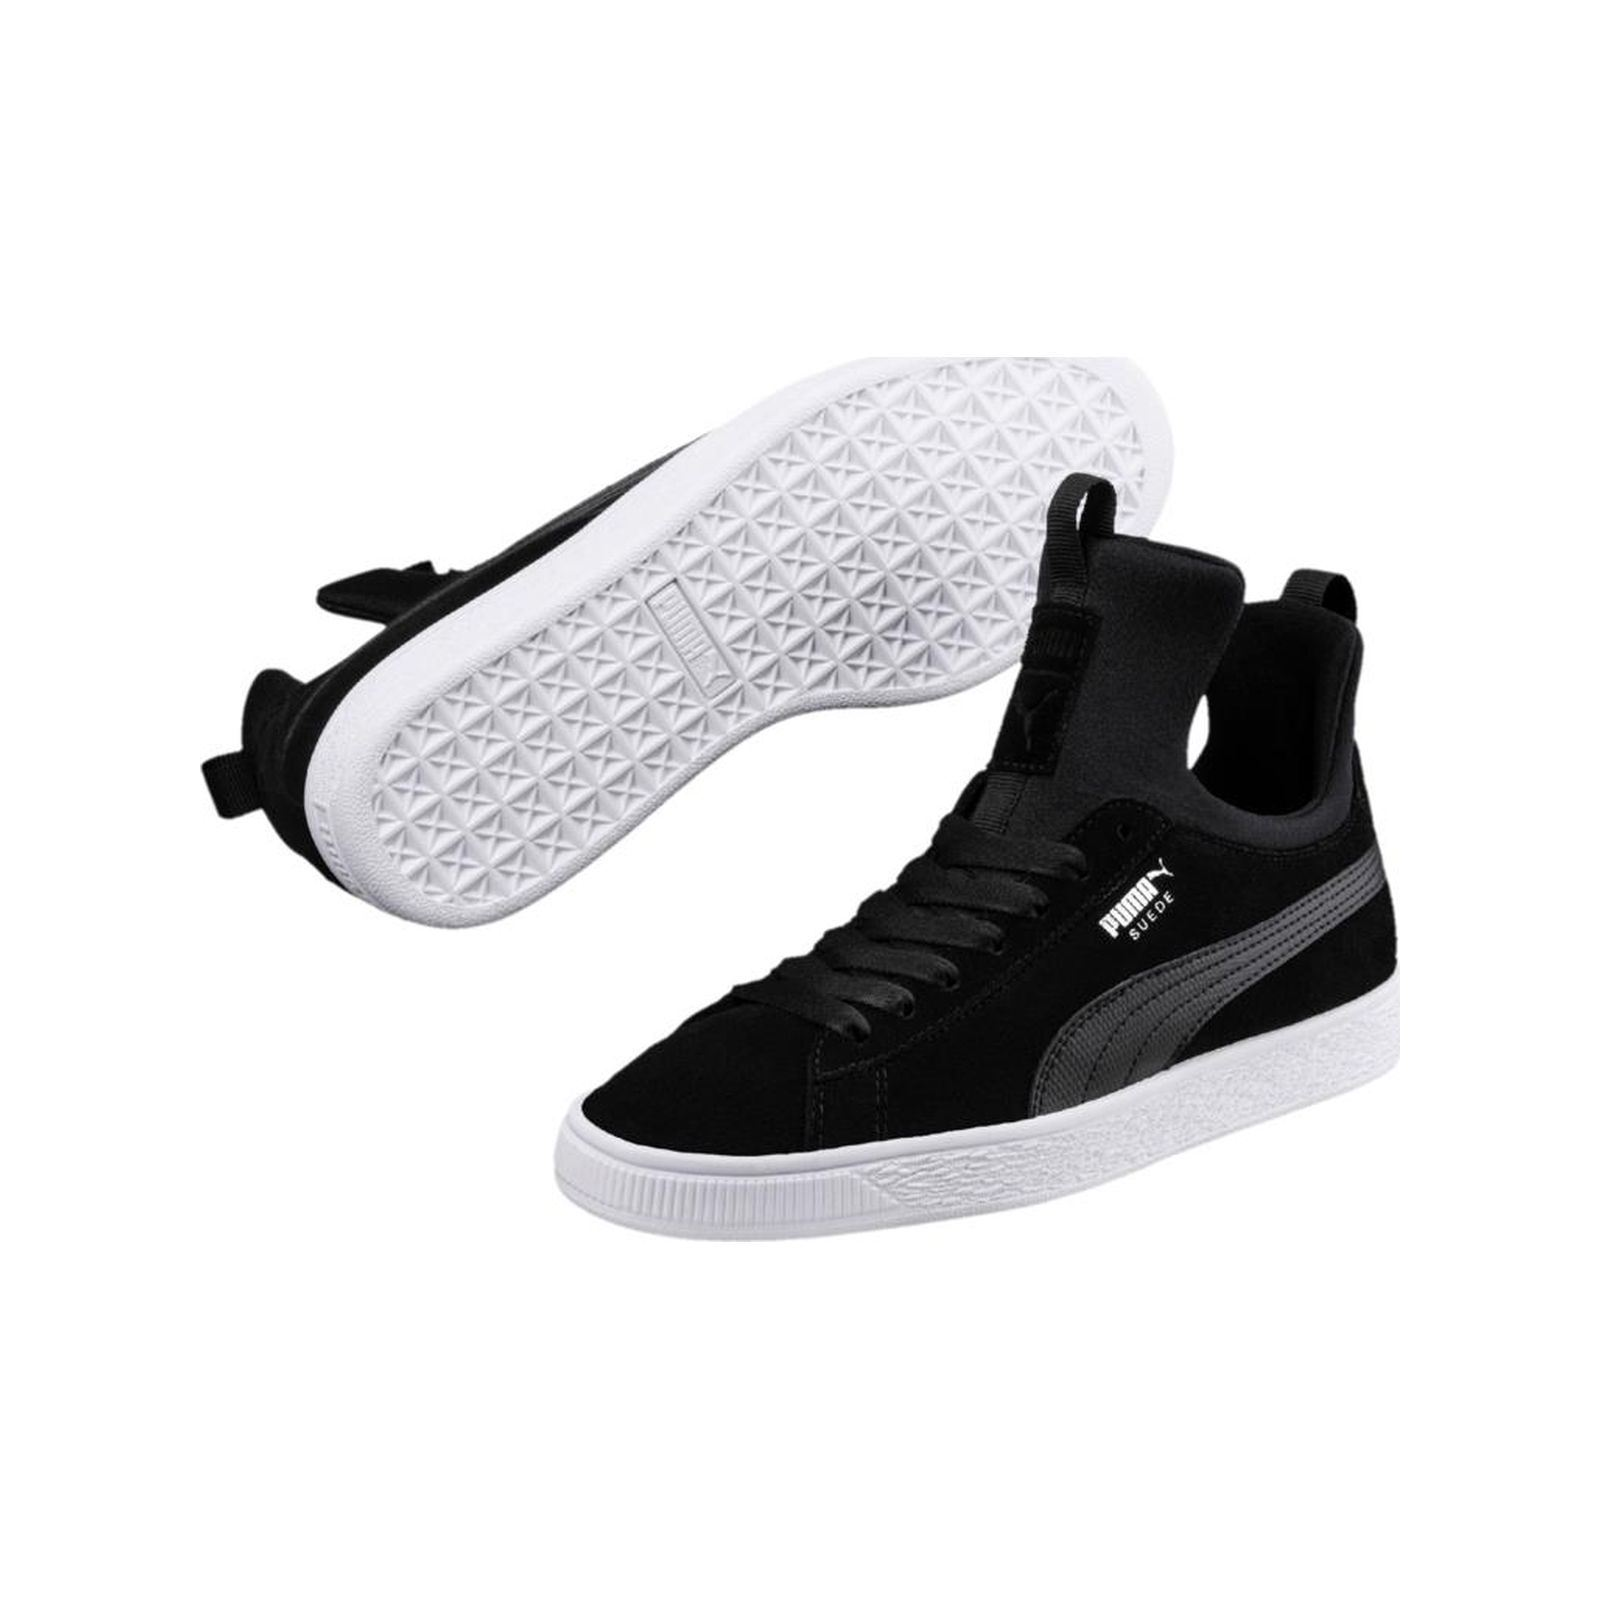 04c90c624b7 Puma Suede Fierce - Baskets montantesen cuir - noir